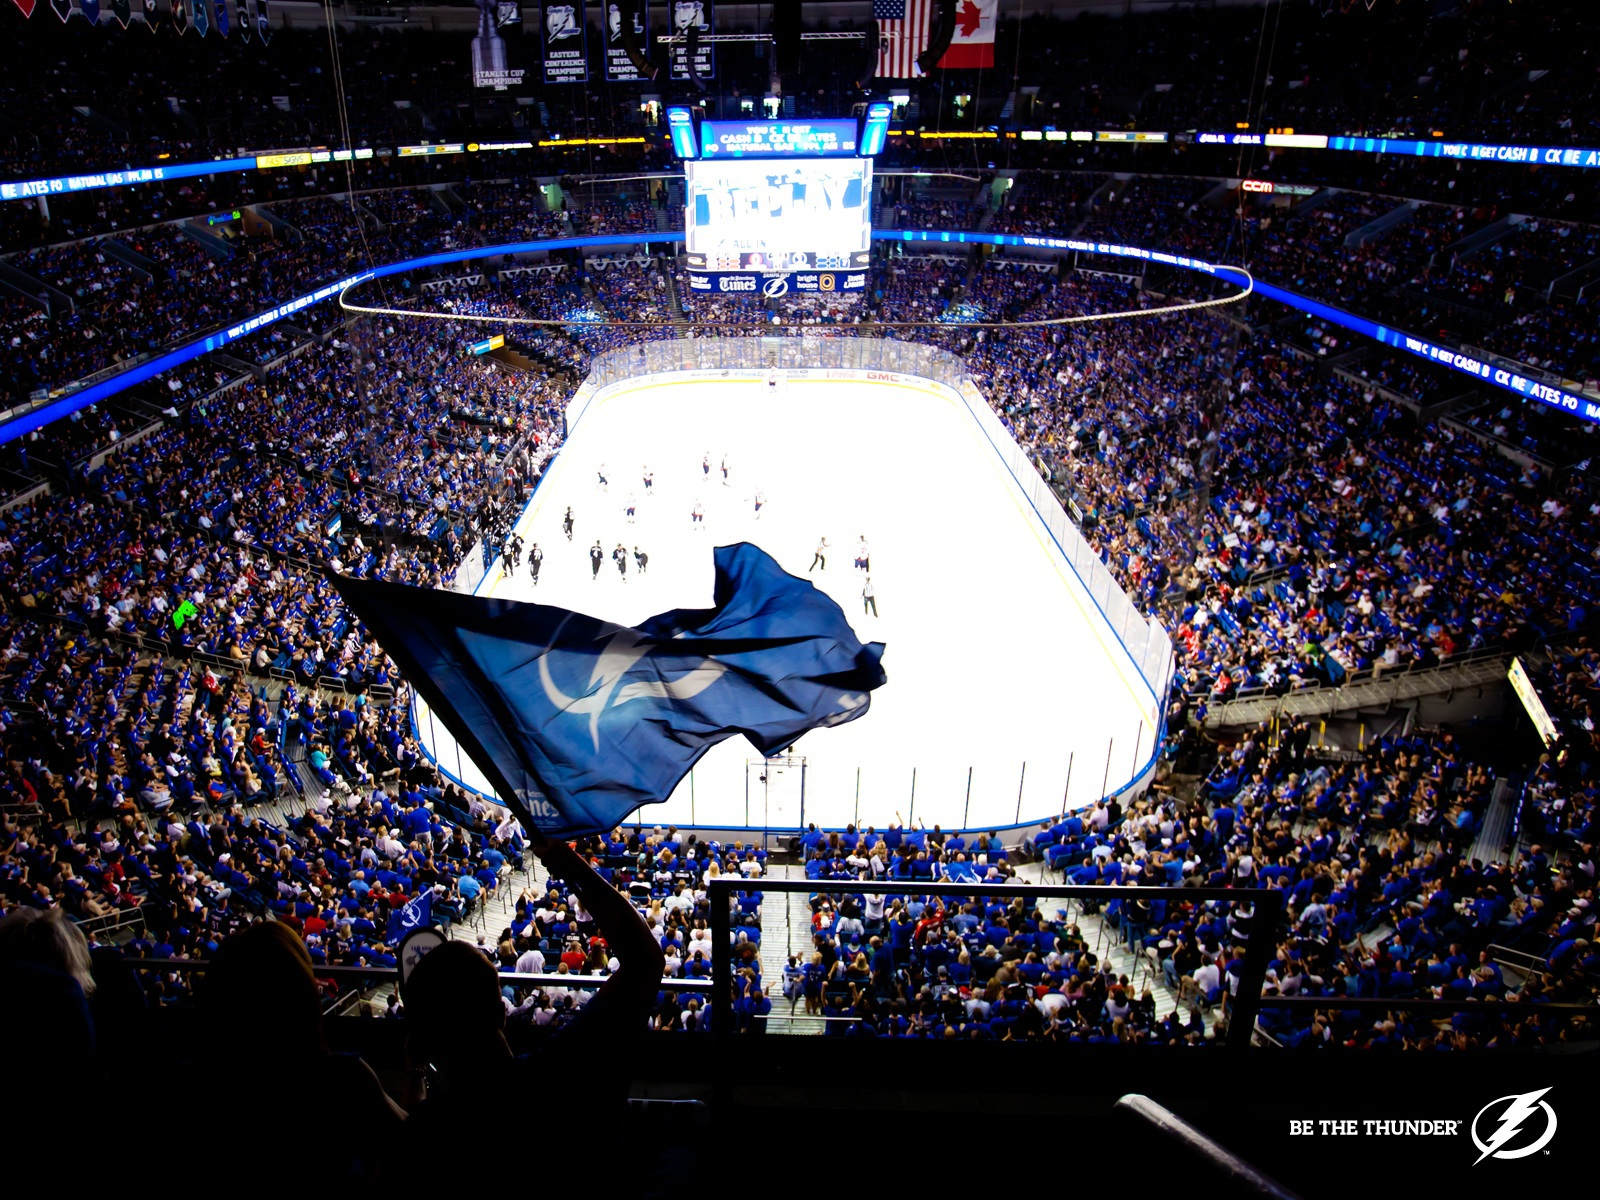 Vancouver Canucks Wallpaper Hd Tampa Bay Lightning Images Be The Thunder Hd Wallpaper And